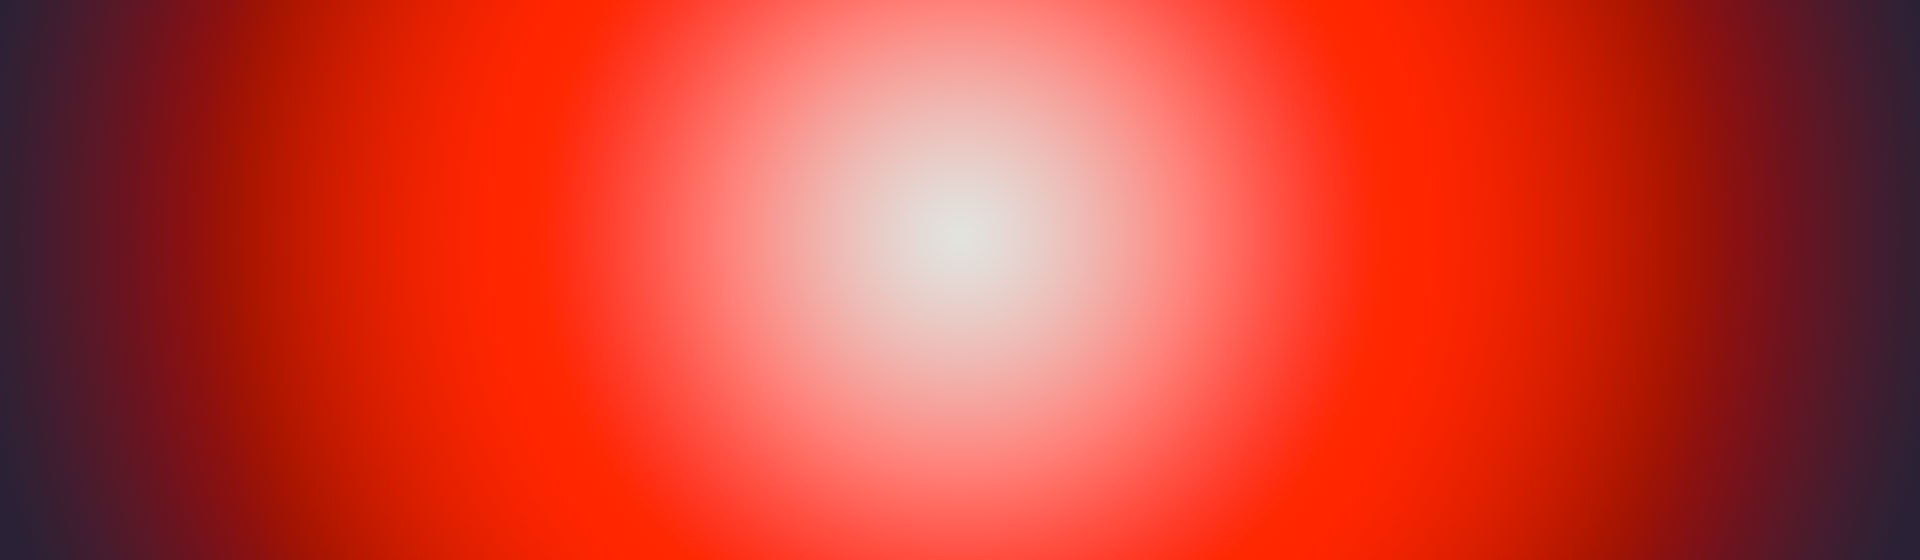 red background - Updates in Response to Covid-19